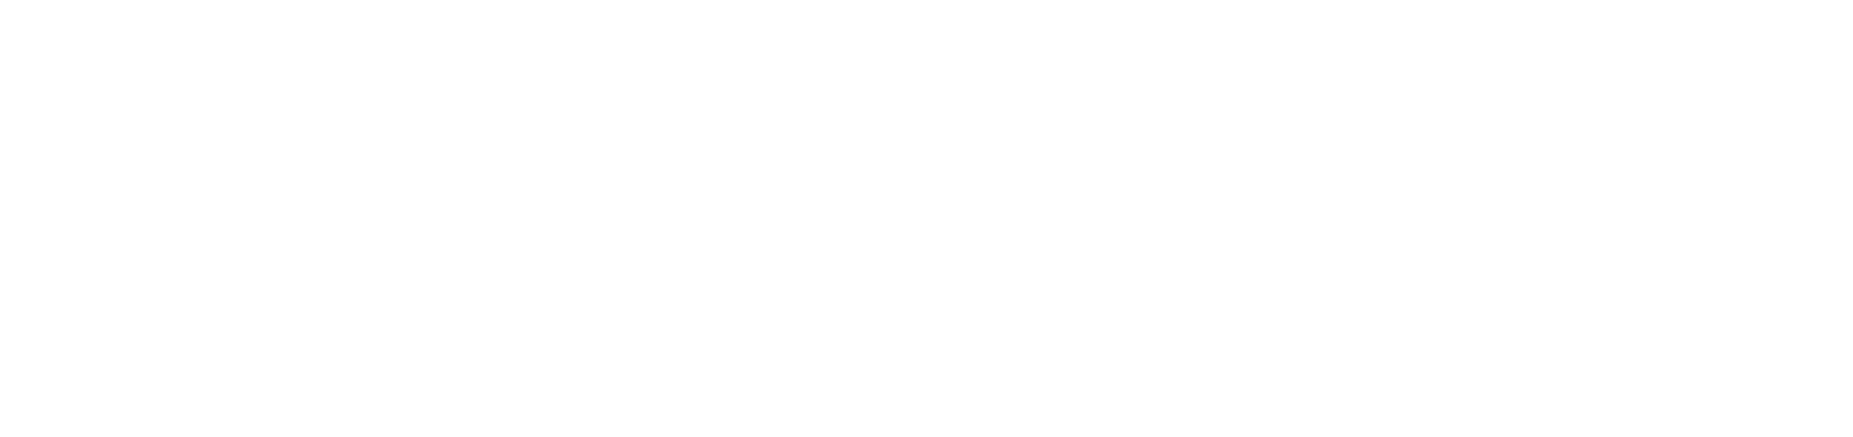 https://waypointcollective.com/wp-content/uploads/2020/11/MM-Colorado-White-Transparent-For-Web.png